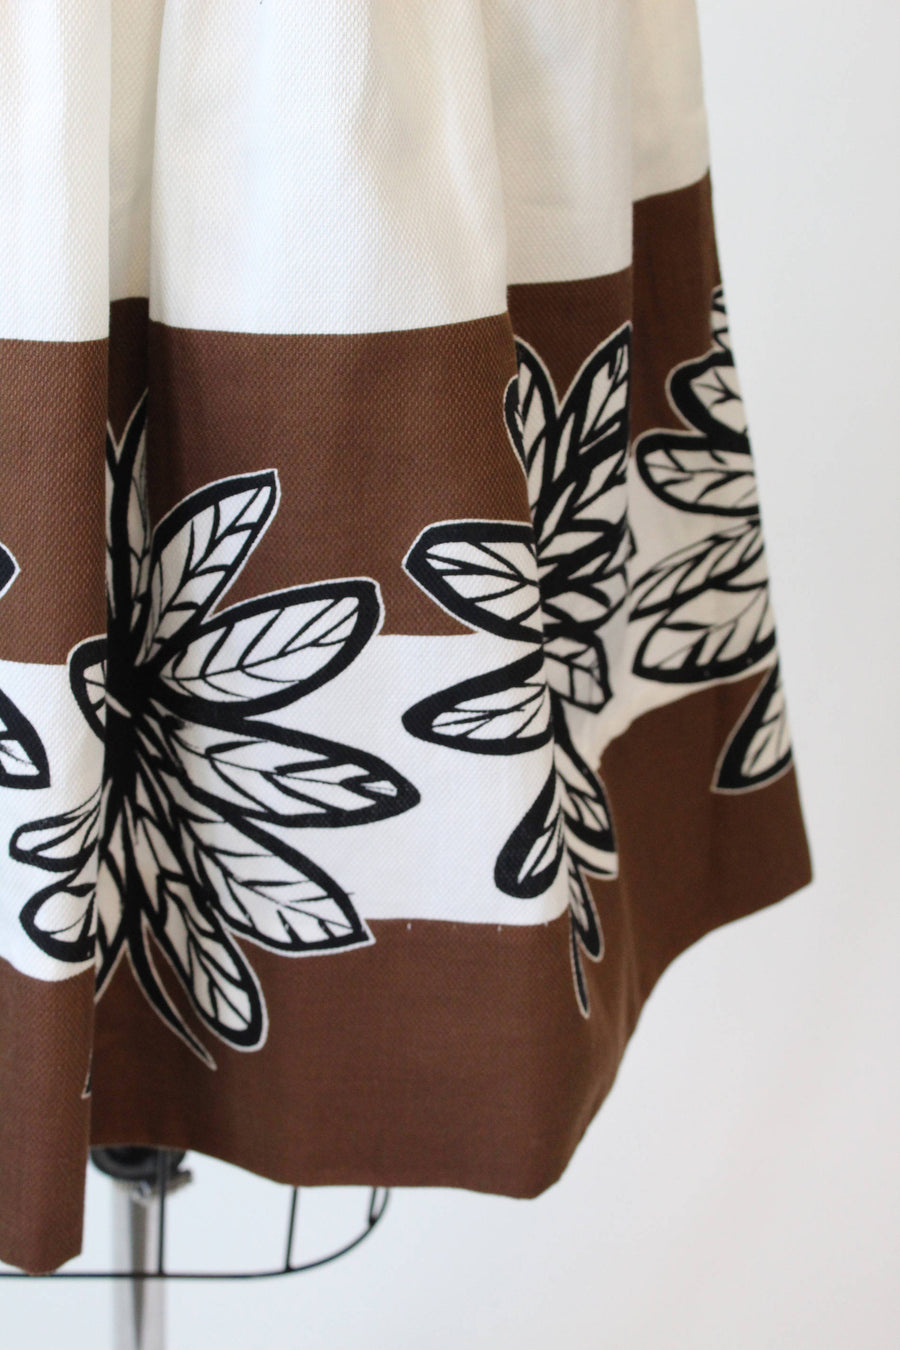 1950s deadstock novelty print skirt xxs | vintage cotton skirt